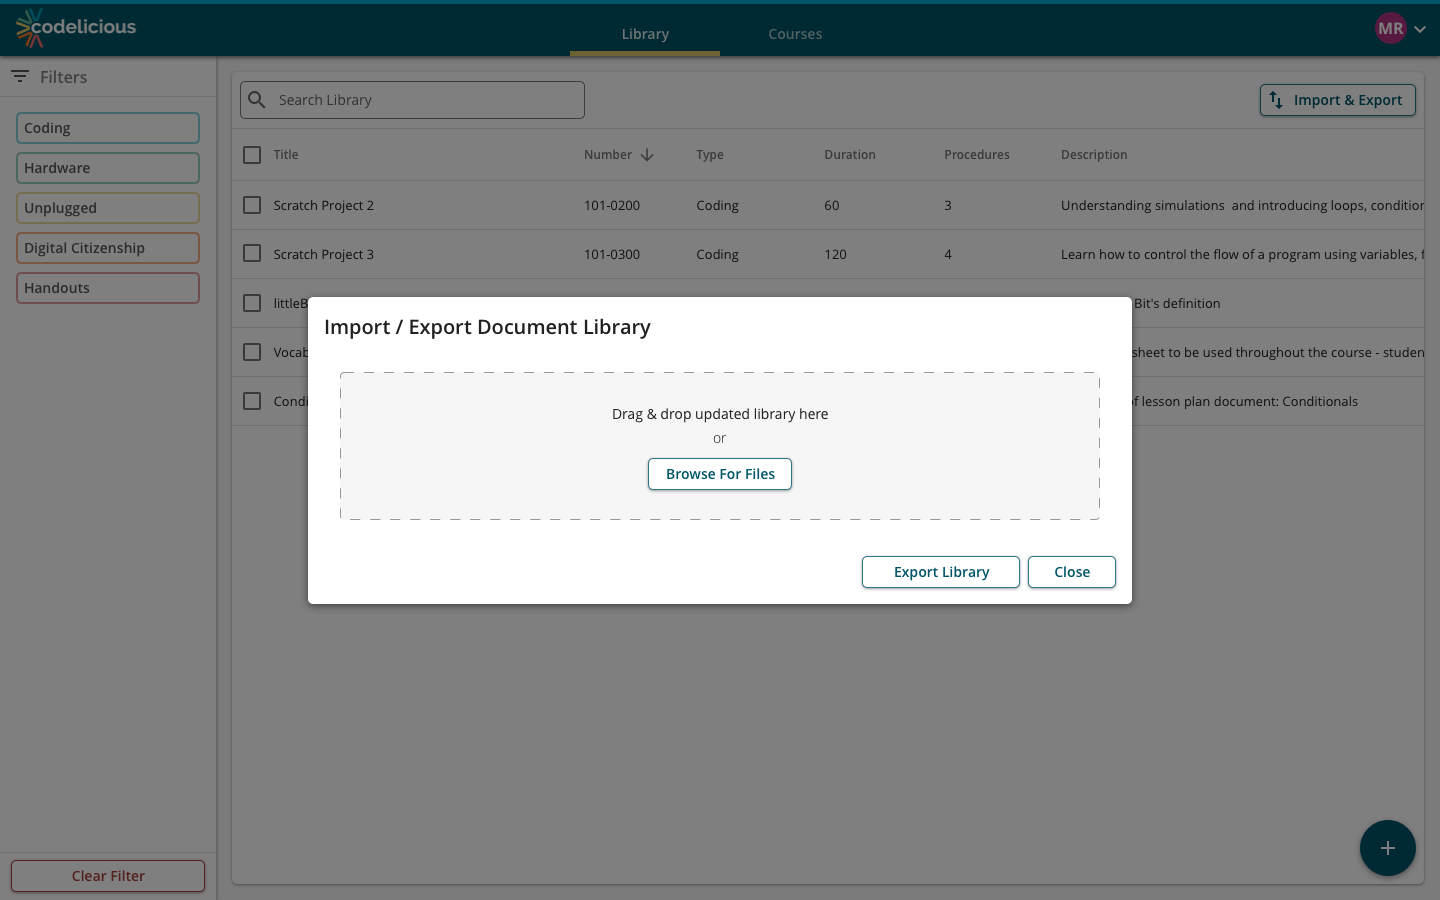 Spreadsheet import/export facilitated mass update functions